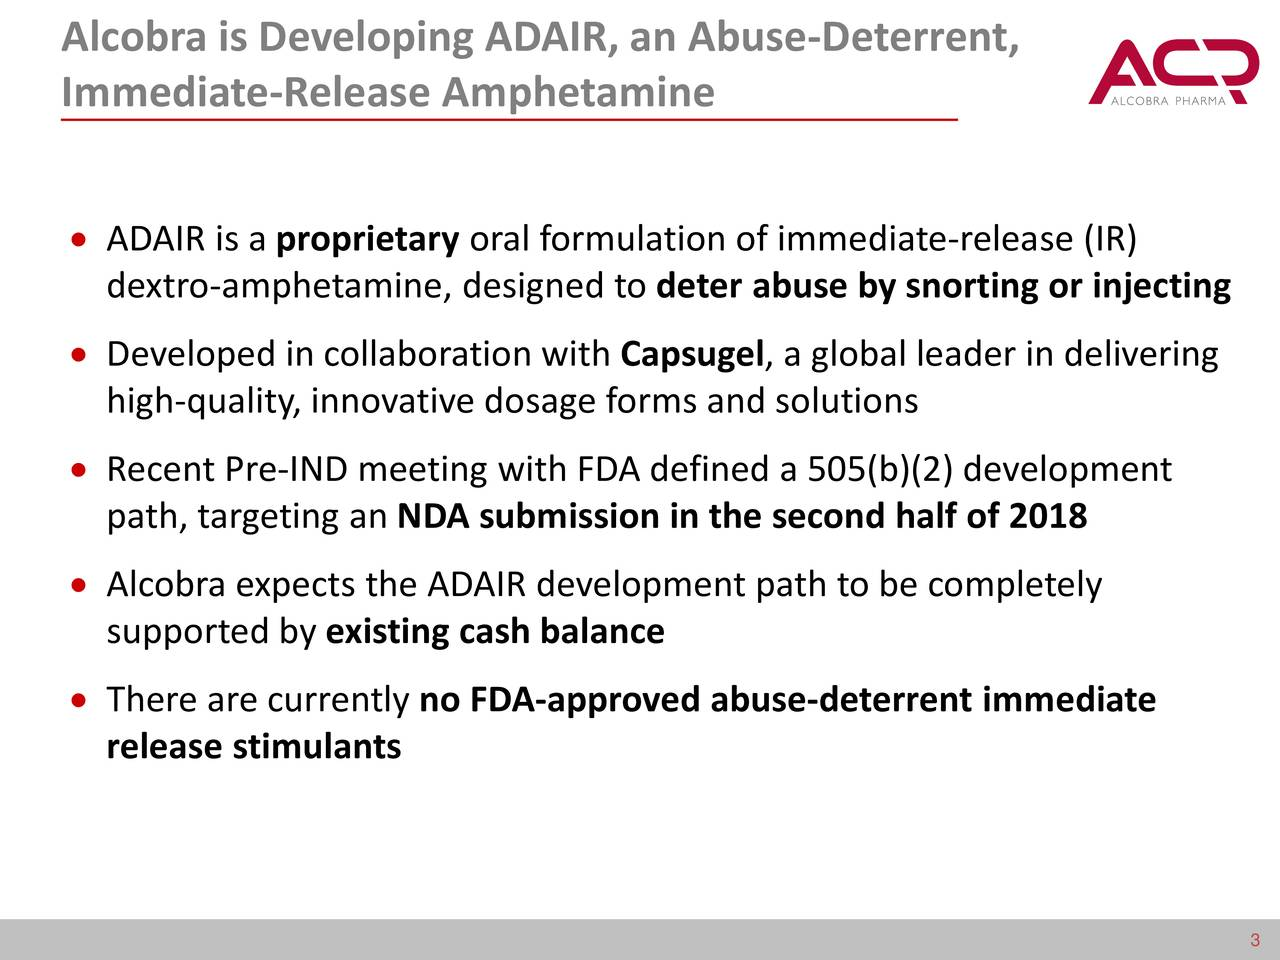 Immediate-Release Amphetamine ADAIR is a proprietary oral formulation of immediate-release (IR) dextro-amphetamine, designed to deter abuse by snorting or injecting Developed in collaboration with Capsugel, a global leader in delivering high-quality, innovative dosage forms and solutions Recent Pre-IND meeting with FDA defined a 505(b)(2) development path, targeting an NDA submission in the second half of 2018 Alcobra expects the ADAIR development path to be completely supported by existing cash balance There are currently no FDA-approved abuse-deterrent immediate release stimulants